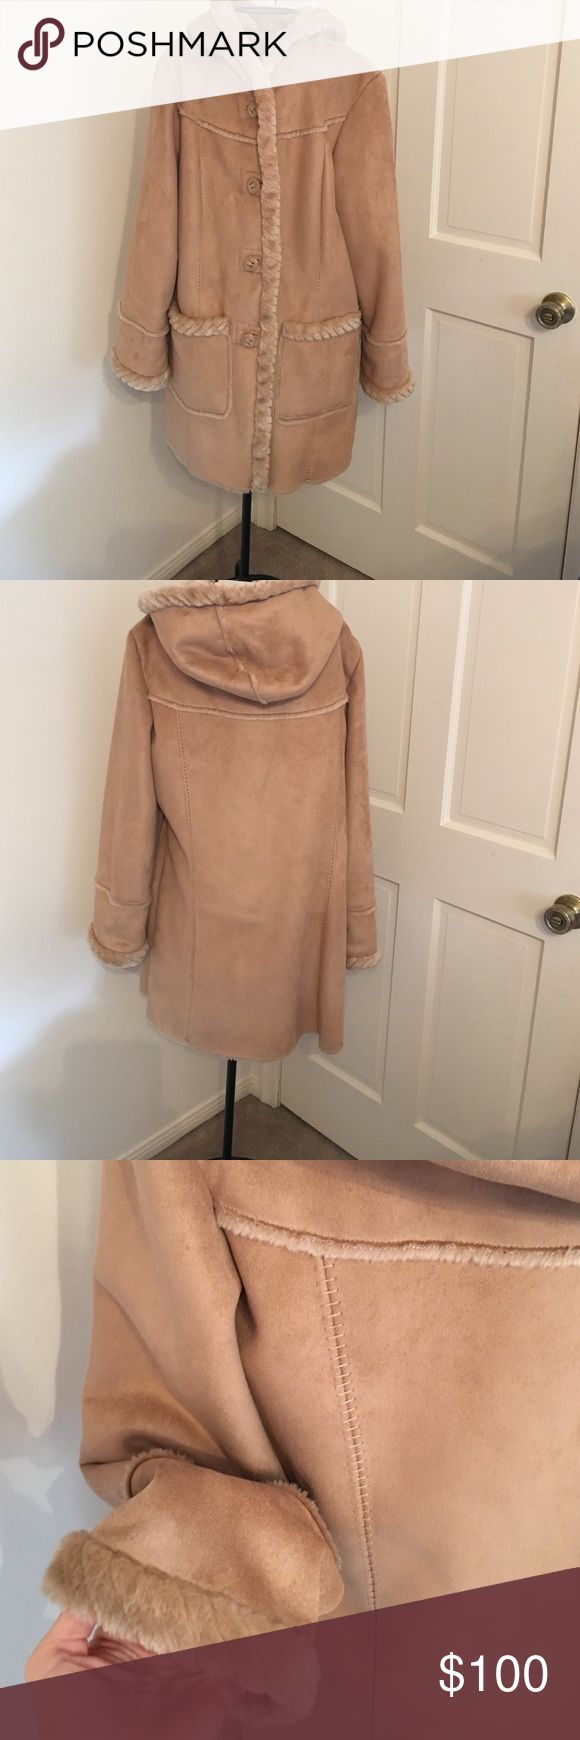 Sued and fur faux winter jacket Beautiful never worn before fake for design and suede absolutely gorgeous shown in photos I can take more photos if needed St. John's Bay originally $389 size large St. John's Bay Jackets & Coats